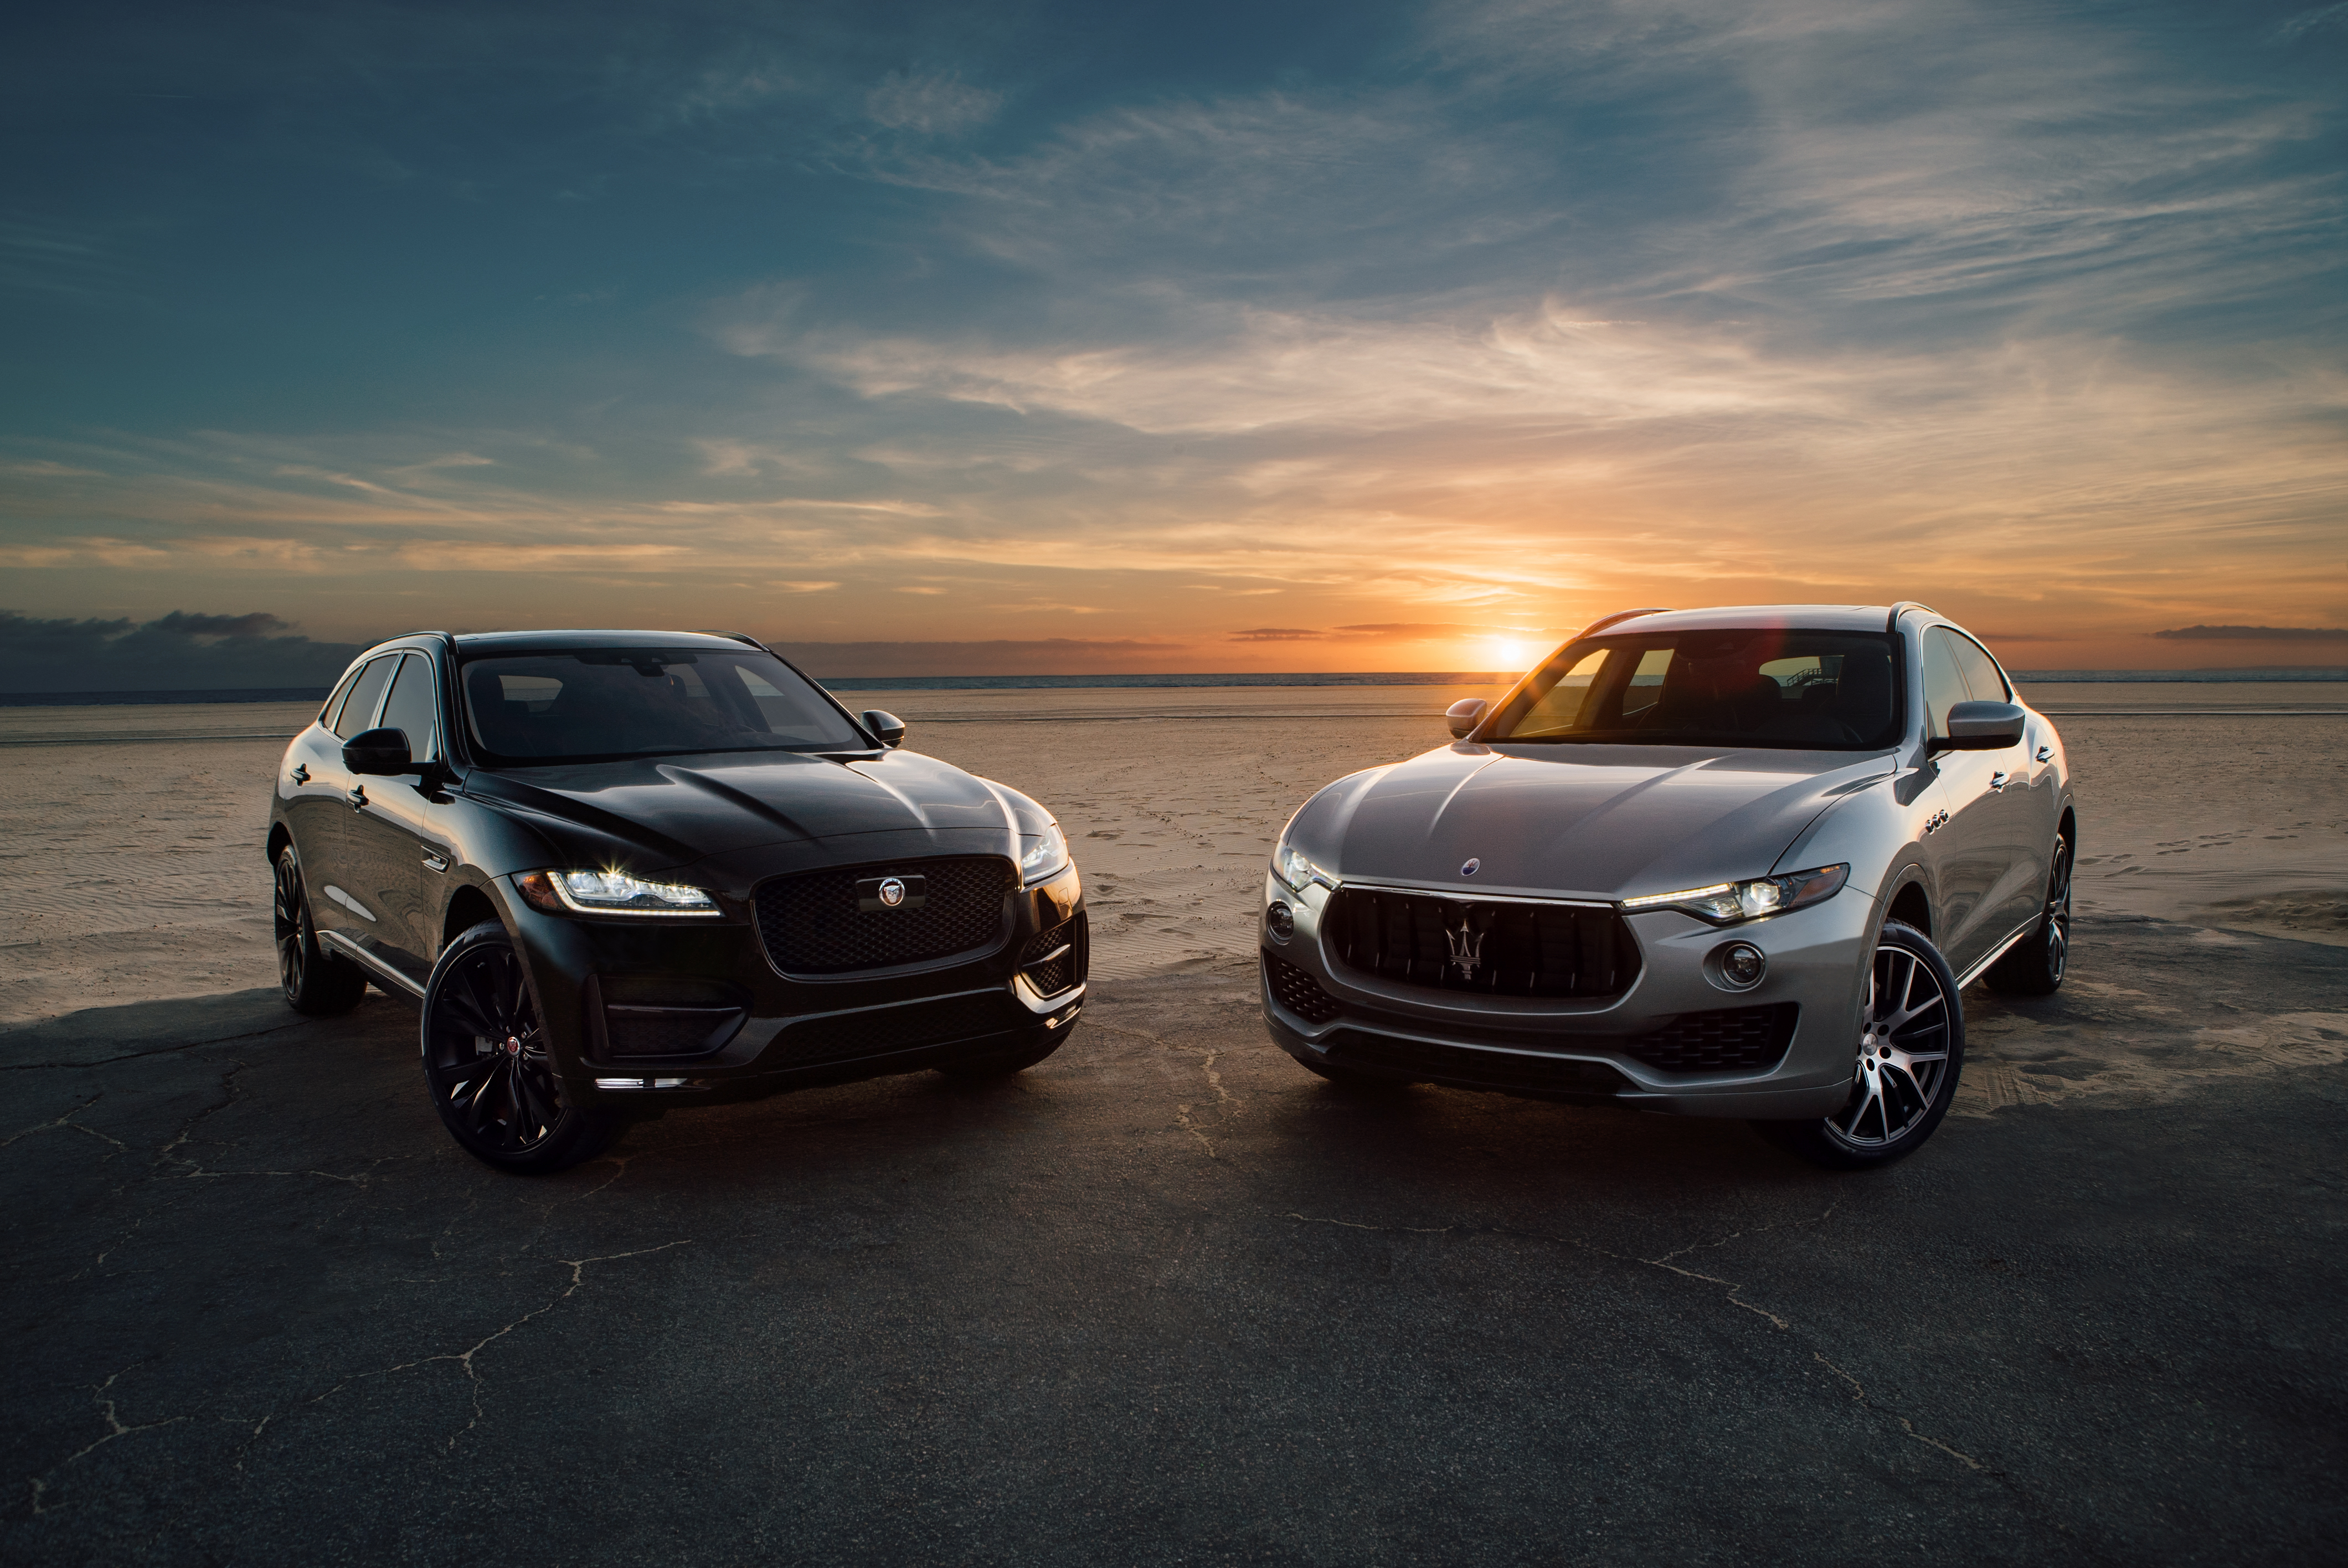 The 2017 Jaguar F-Pace R-Sport and the 2017 Maserati Levante S: Two winning luxury SUVs.